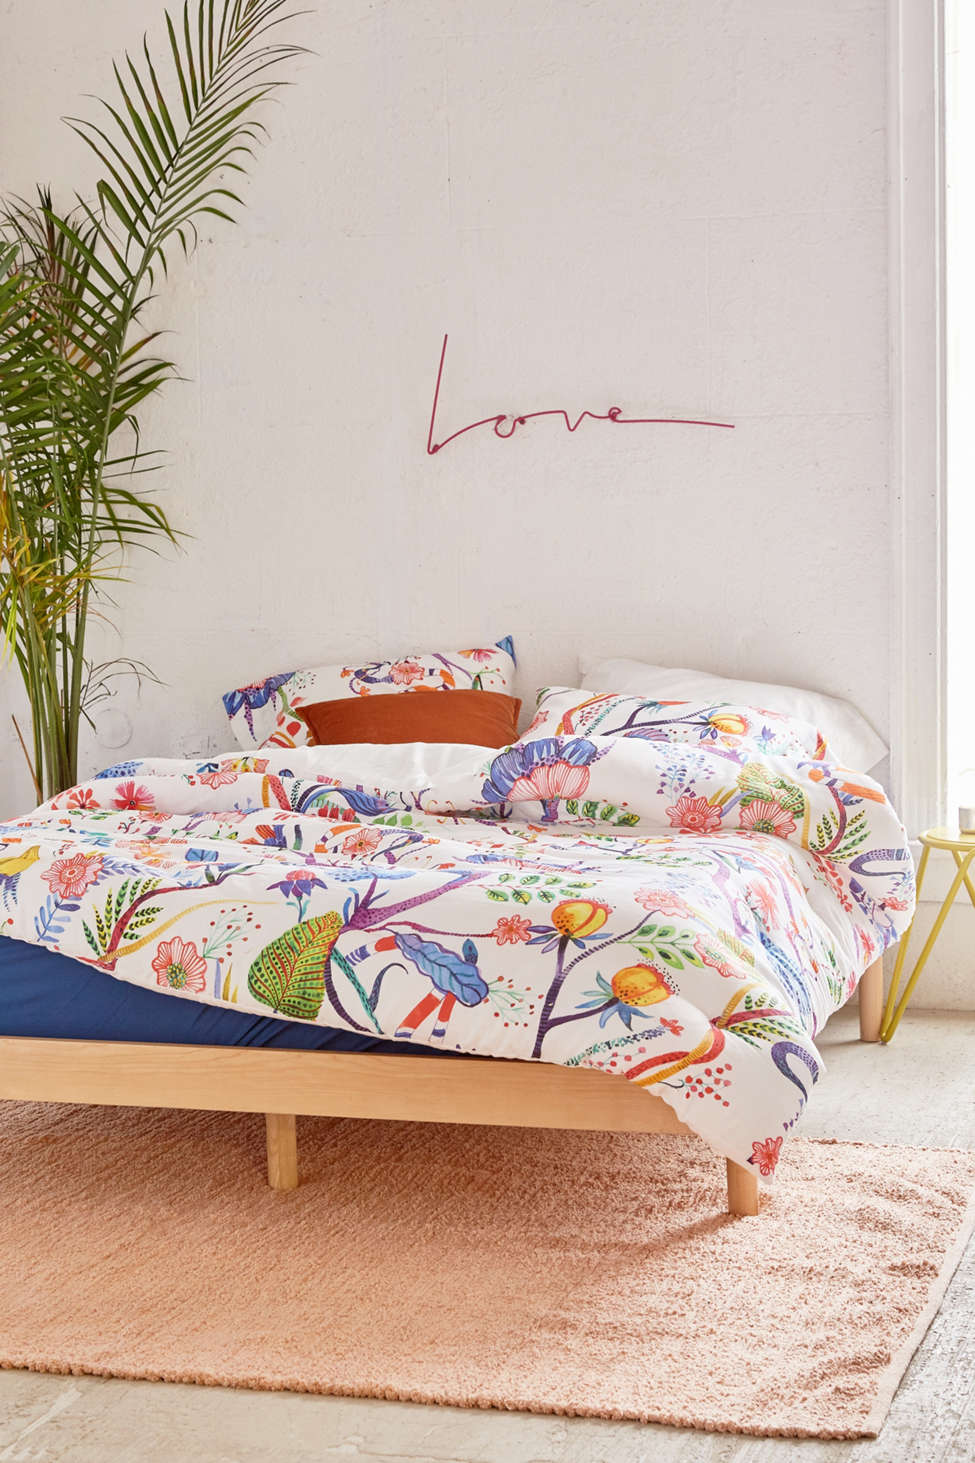 Slide View: 2: Whimsical Floral Comforter Snooze Set